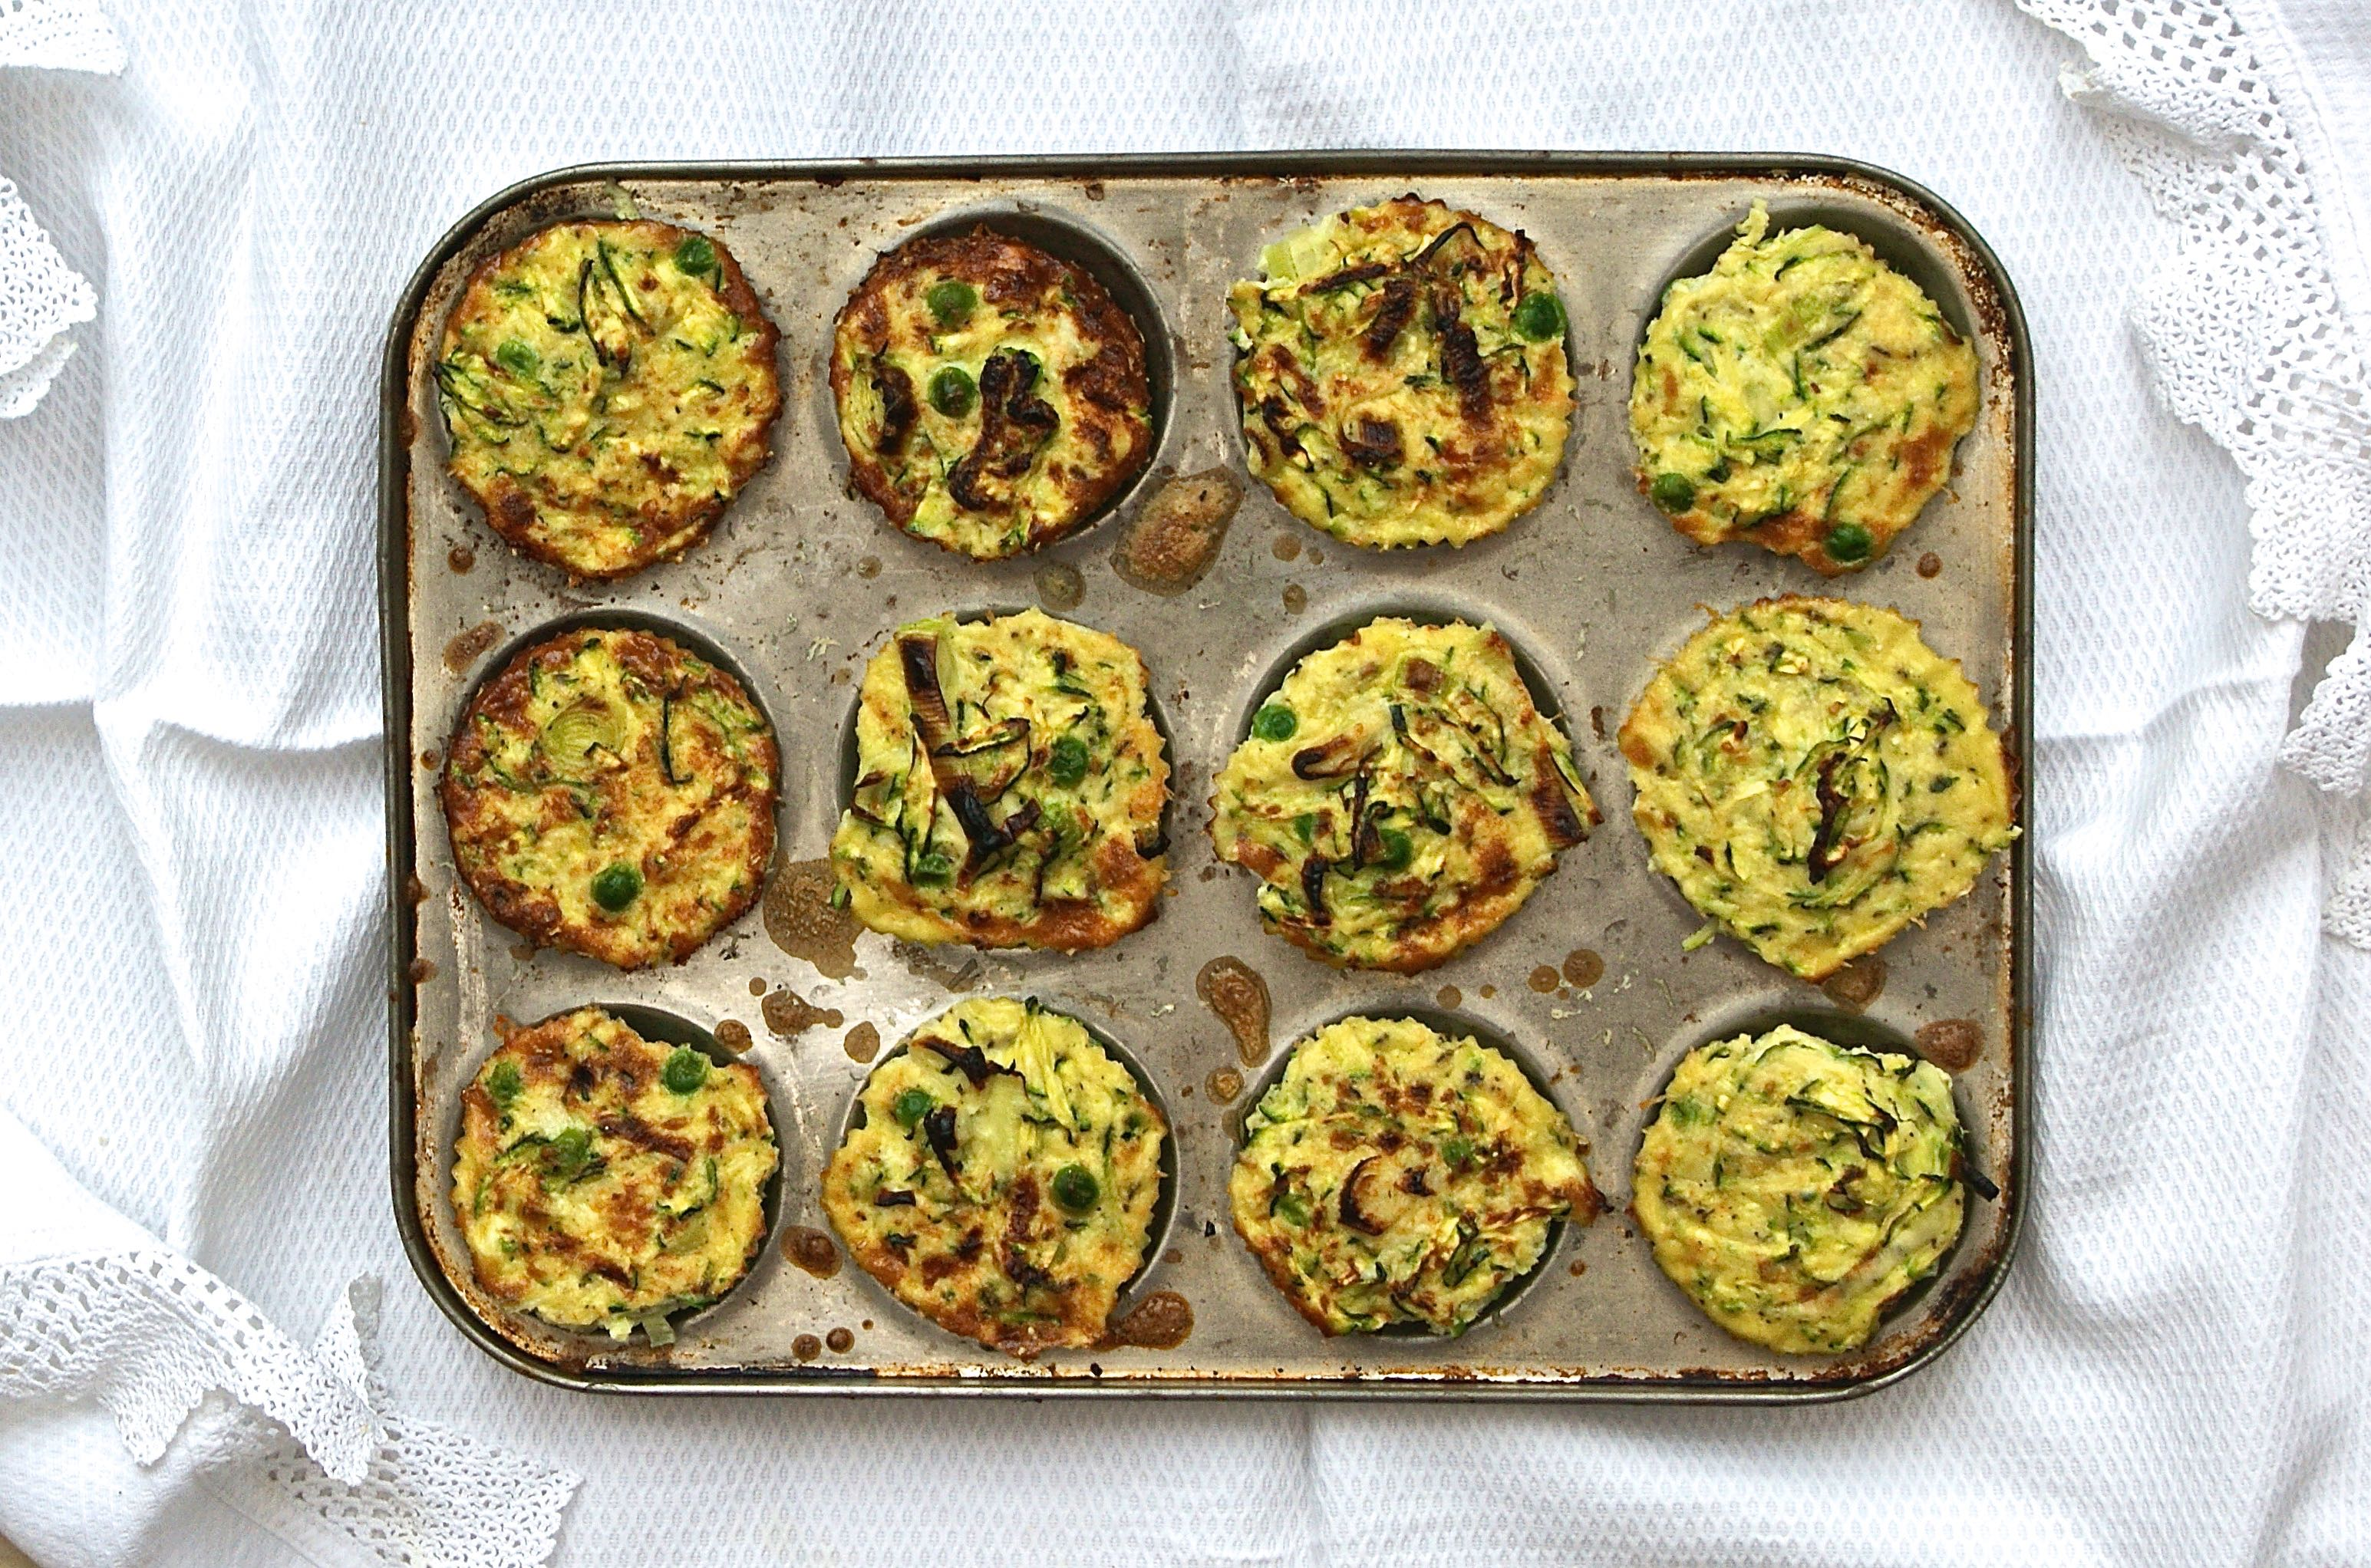 Savoury frittata muffins with spring greens and cheddar | The Cashew ...